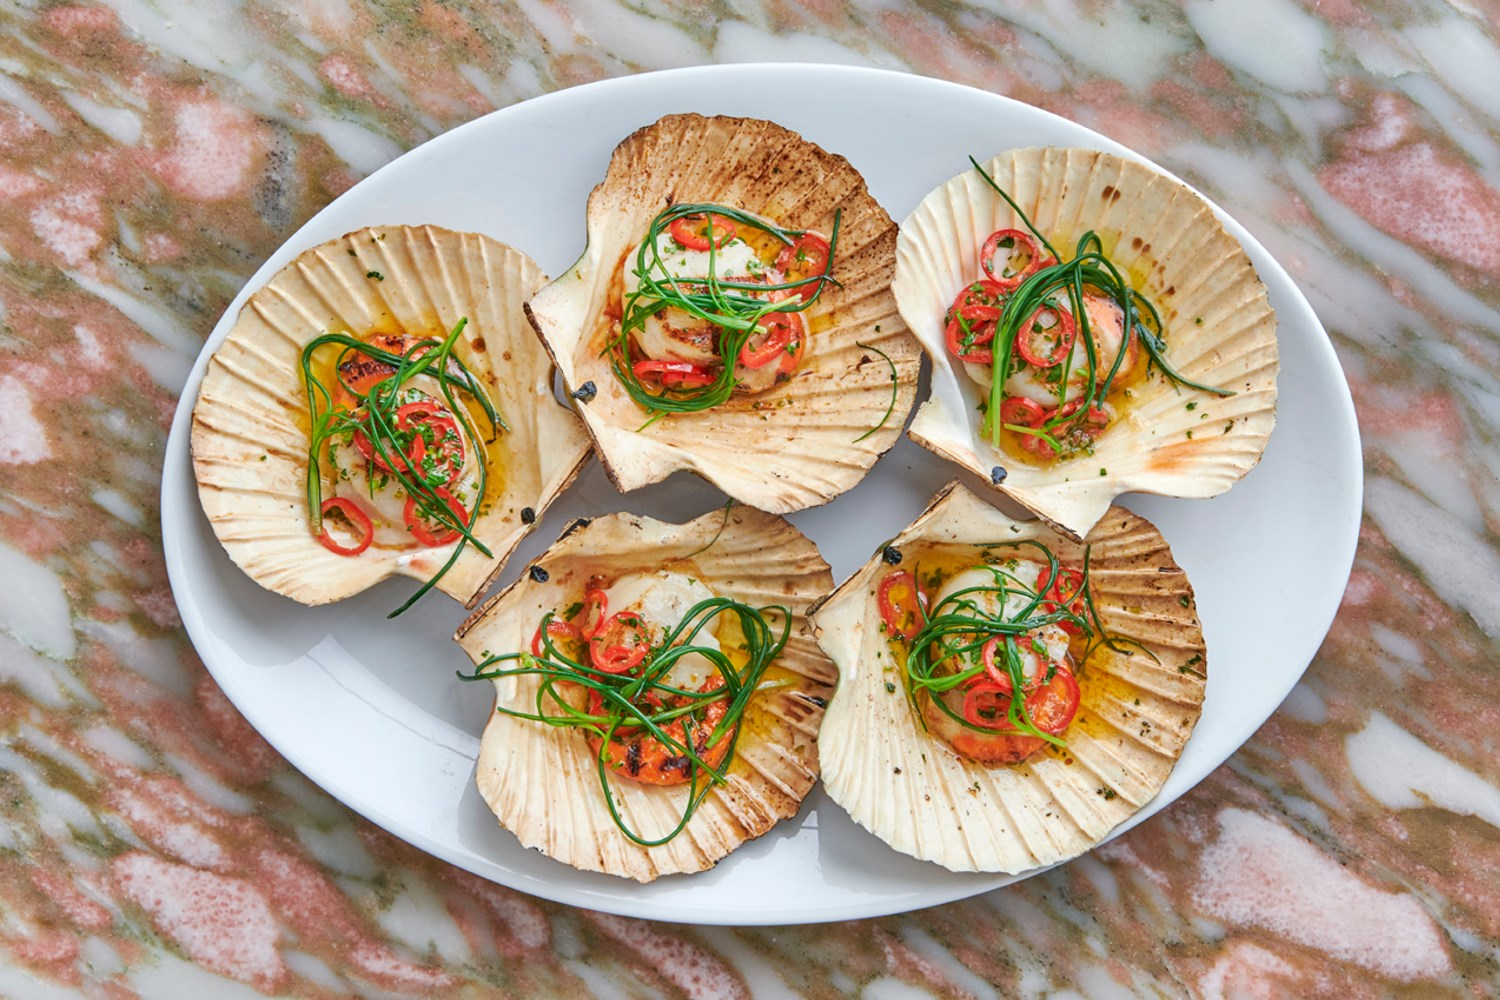 Daphne's Scallops with Chilli & Garlic